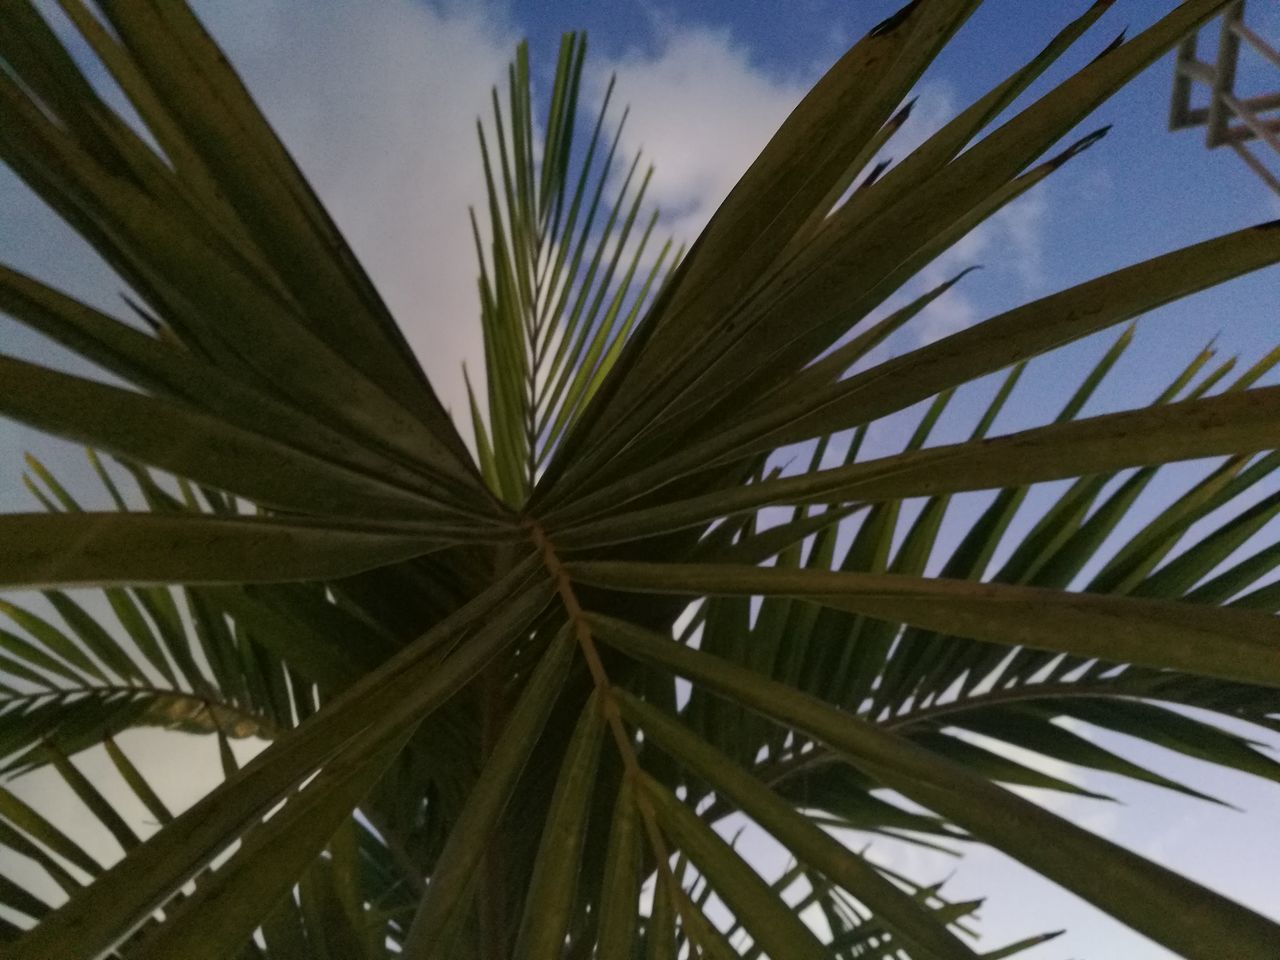 palm tree, palm leaf, leaf, growth, no people, close-up, day, green color, nature, sky, low angle view, outdoors, tree, beauty in nature